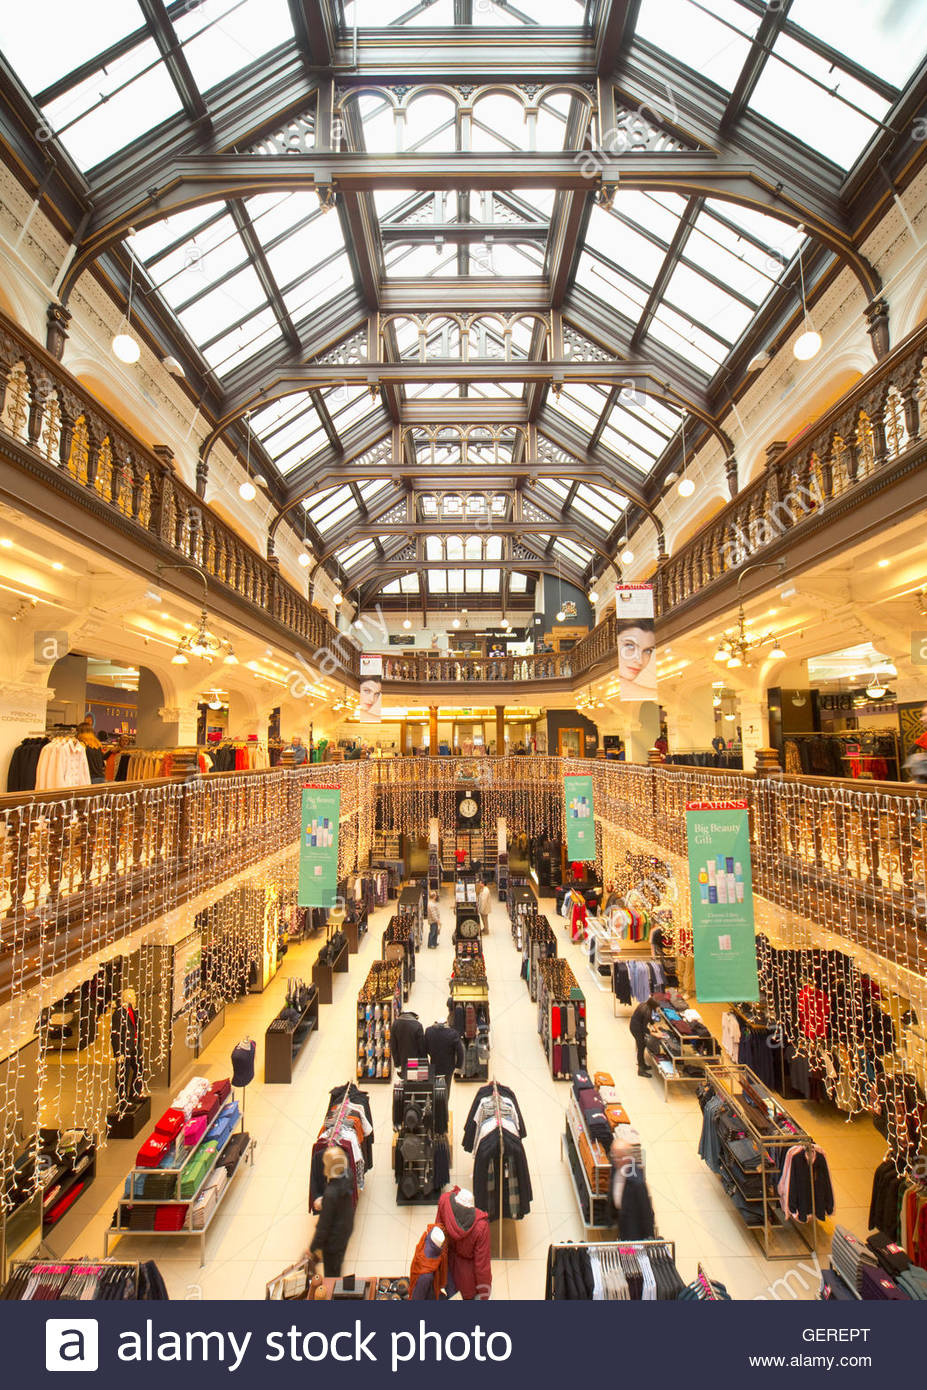 The interior of Jenners Department Store in the city centre of Edinburgh, Scotland. - Stock Image